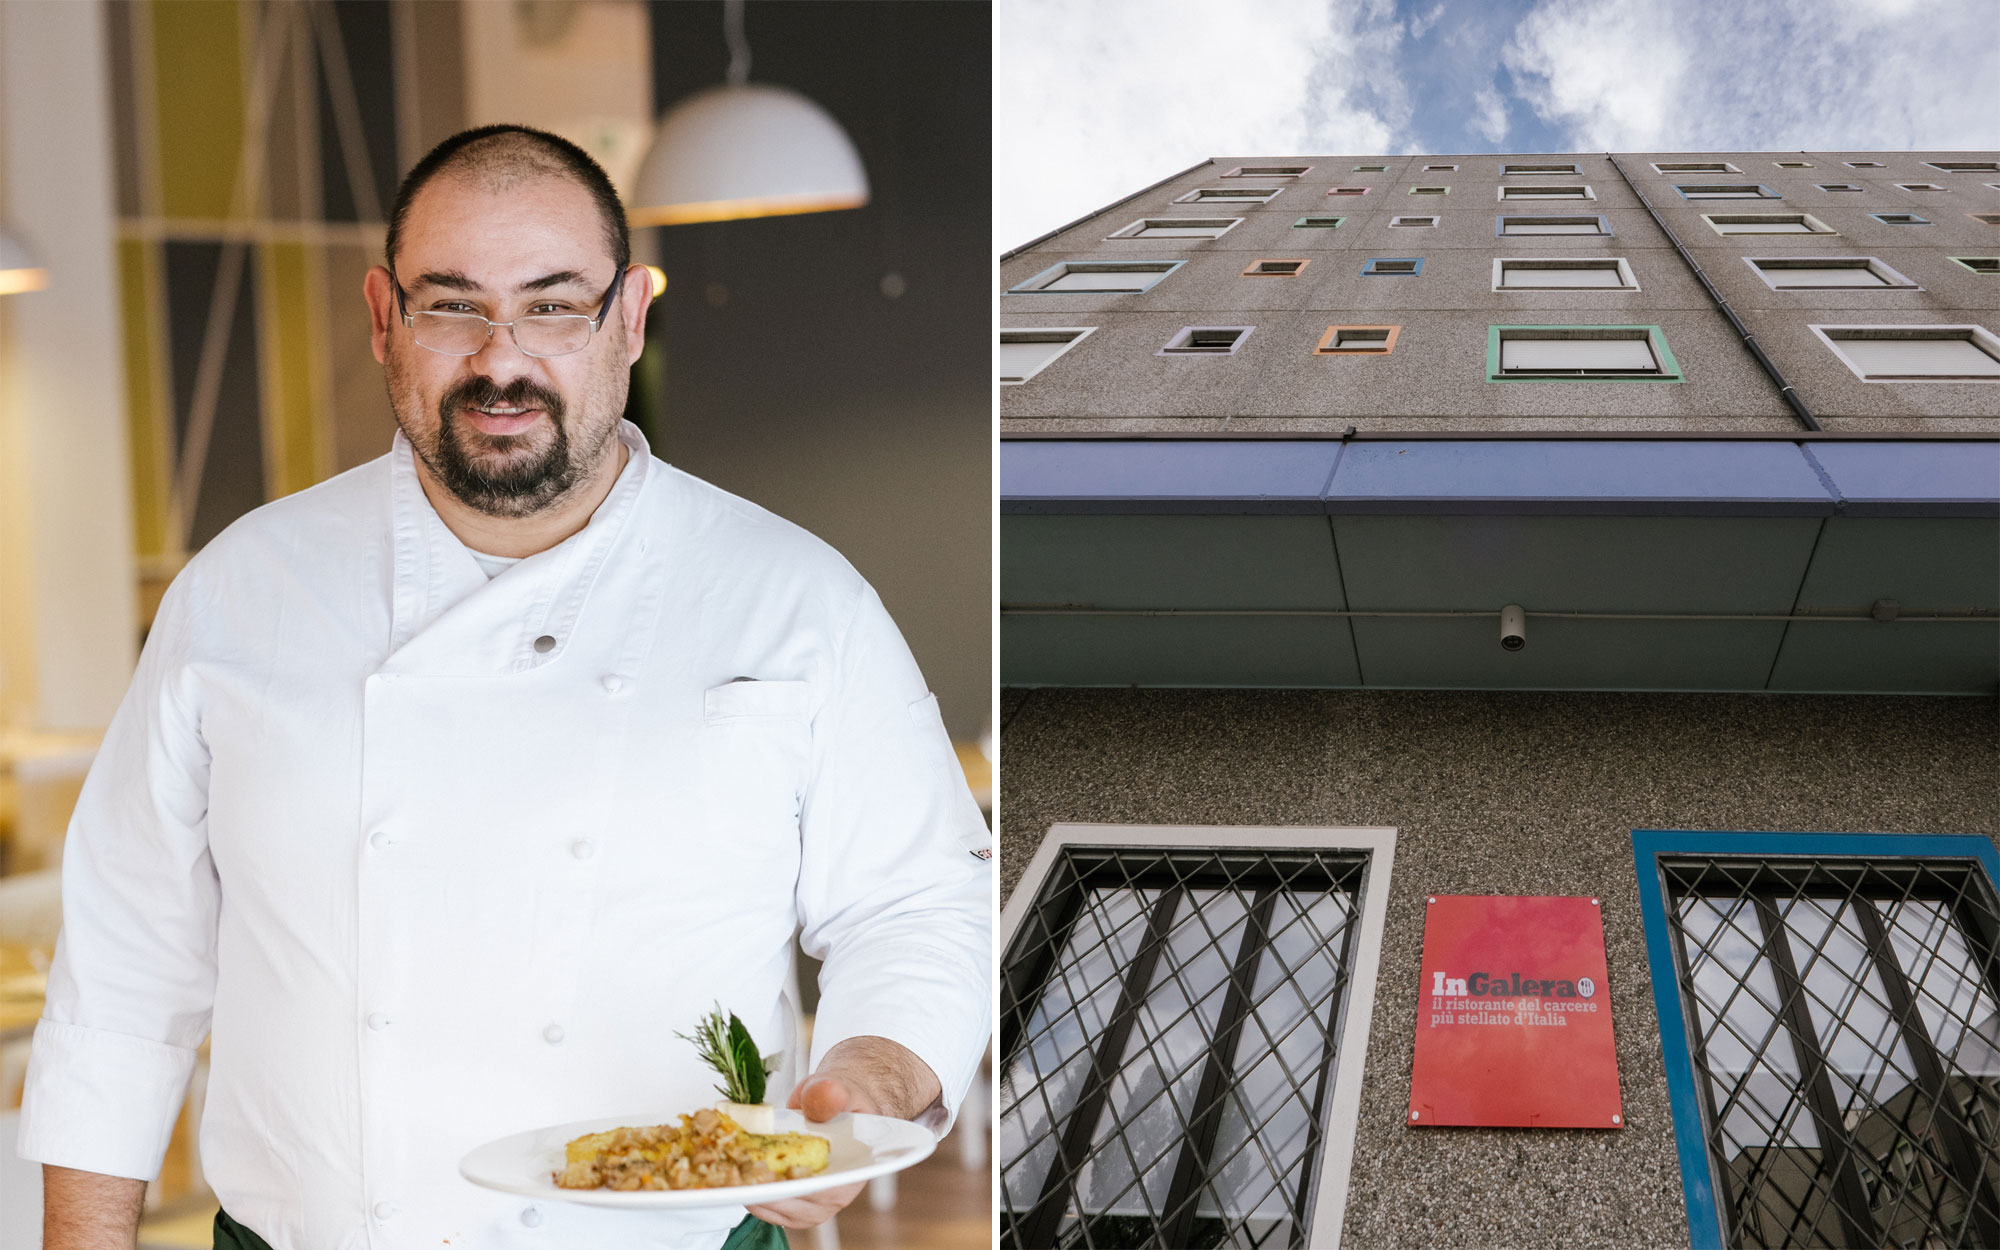 This Italian Jailhouse Restaurant is So Popular it's Booked Months in Advance